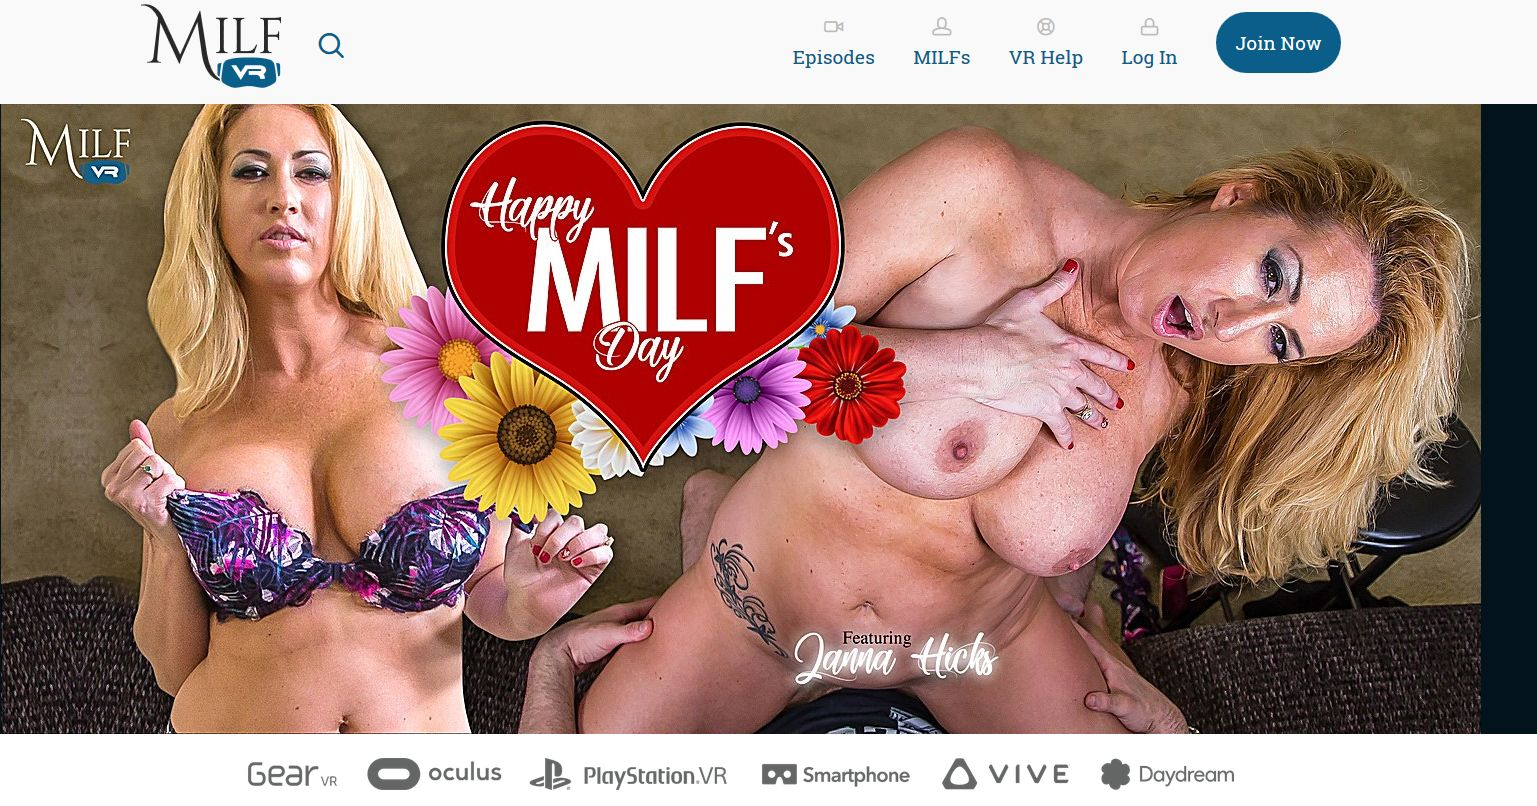 milfvr network bitcoin